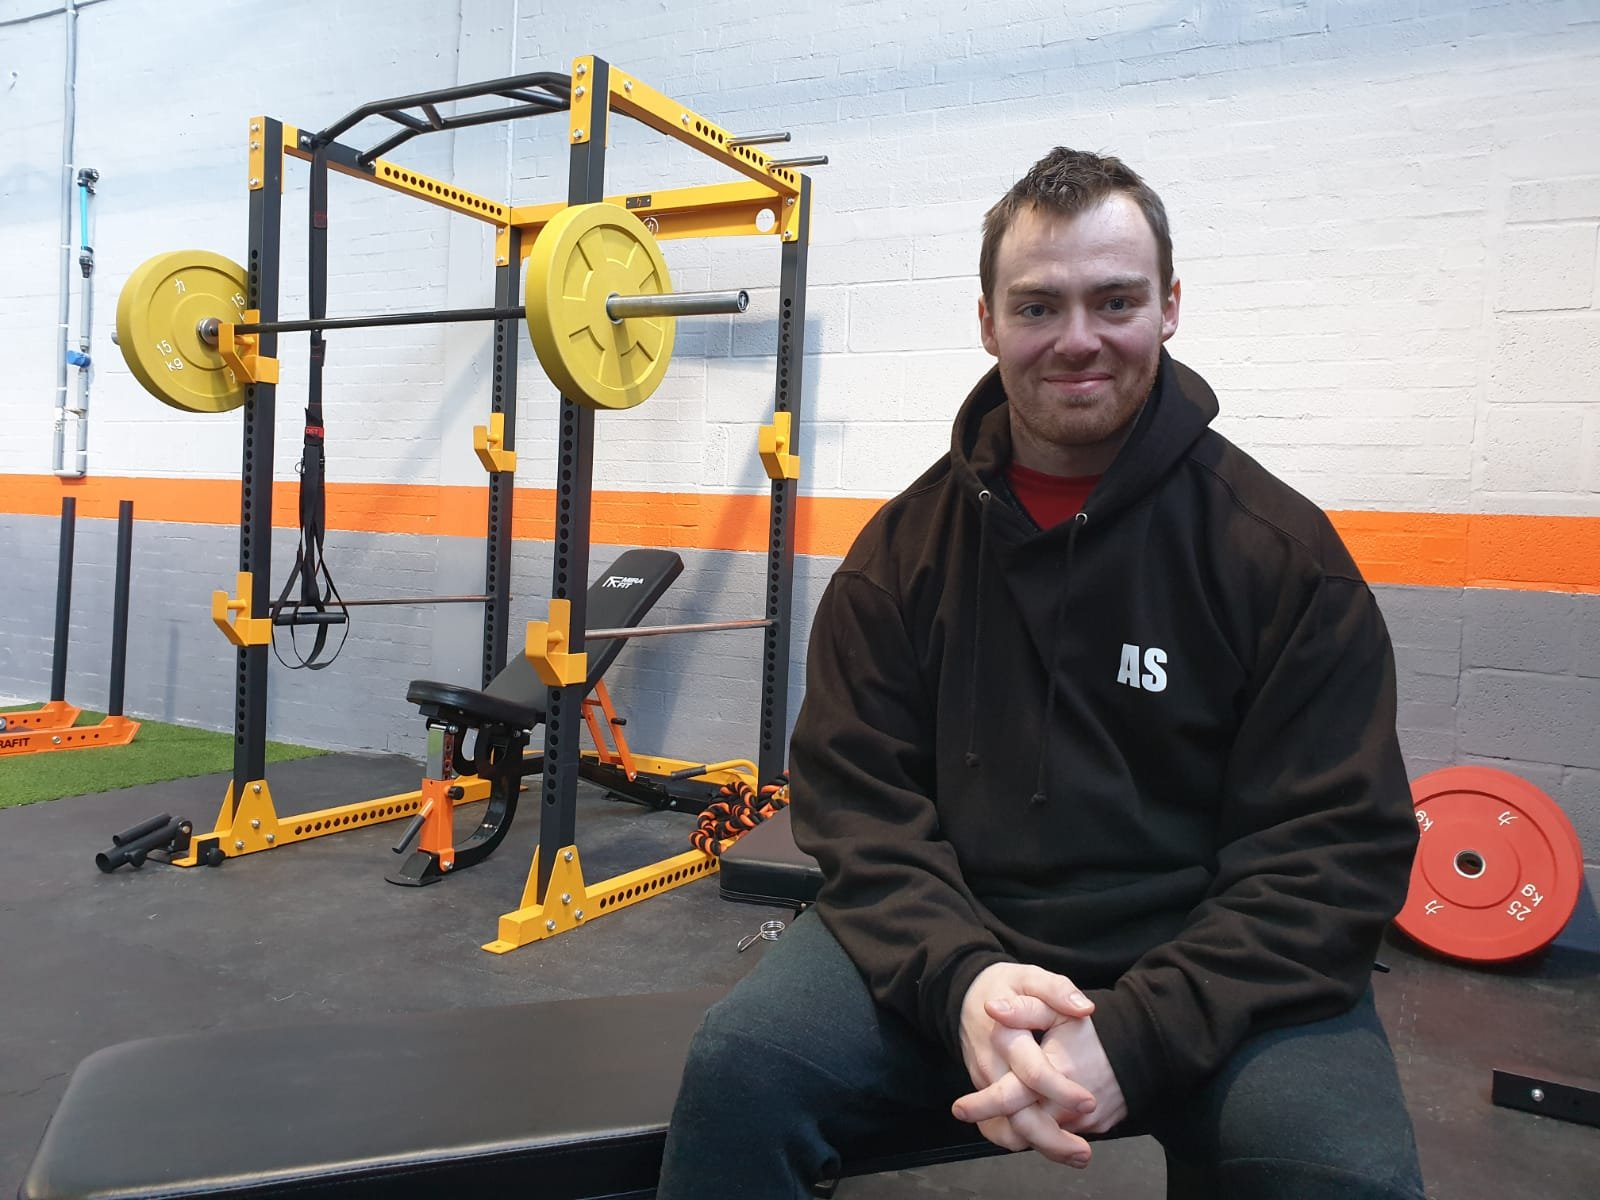 Former Notts international powerlifter who cheated death after being impaled on a fence following horrific car accident opens his first gym